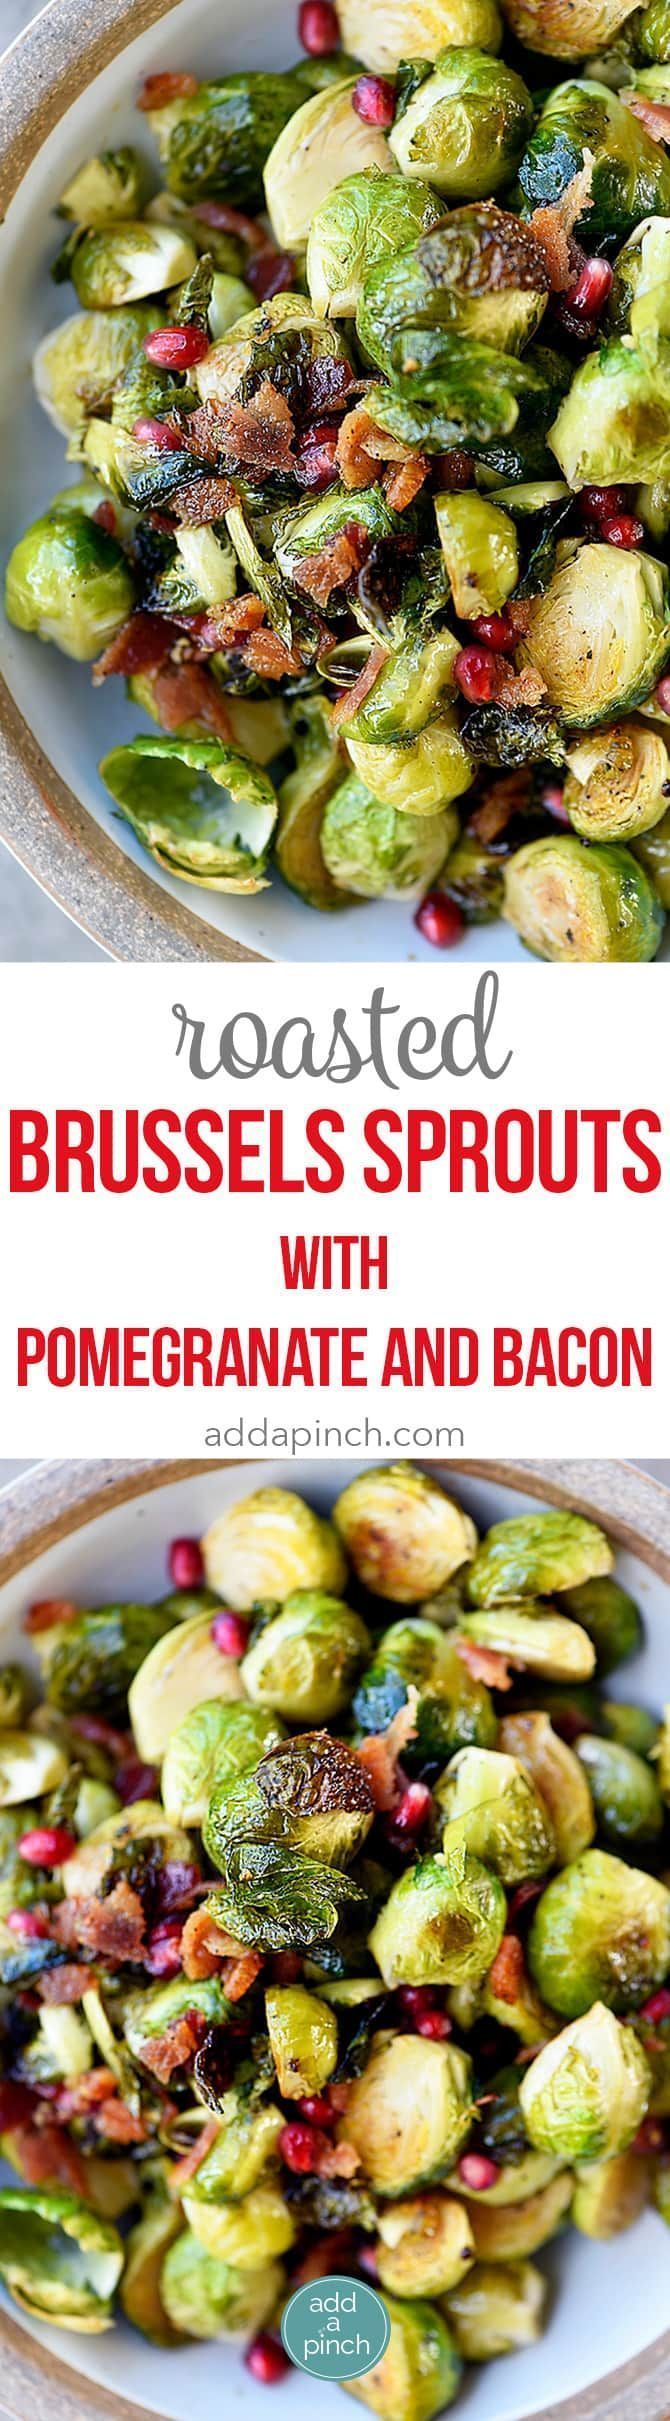 Roasted Brussels Sprouts with Pomegranate and Bacon Recipe - Roasted Brussels Sprouts with Pomegranate and Bacon make a delicious side dish! The brussels sprouts are roasted and then drizzled with maple syrup and balsamic vinegar and then tossed with crispy bacon and pomegranate! // addapinch.com  #vegetables #sidedishes #addapinch